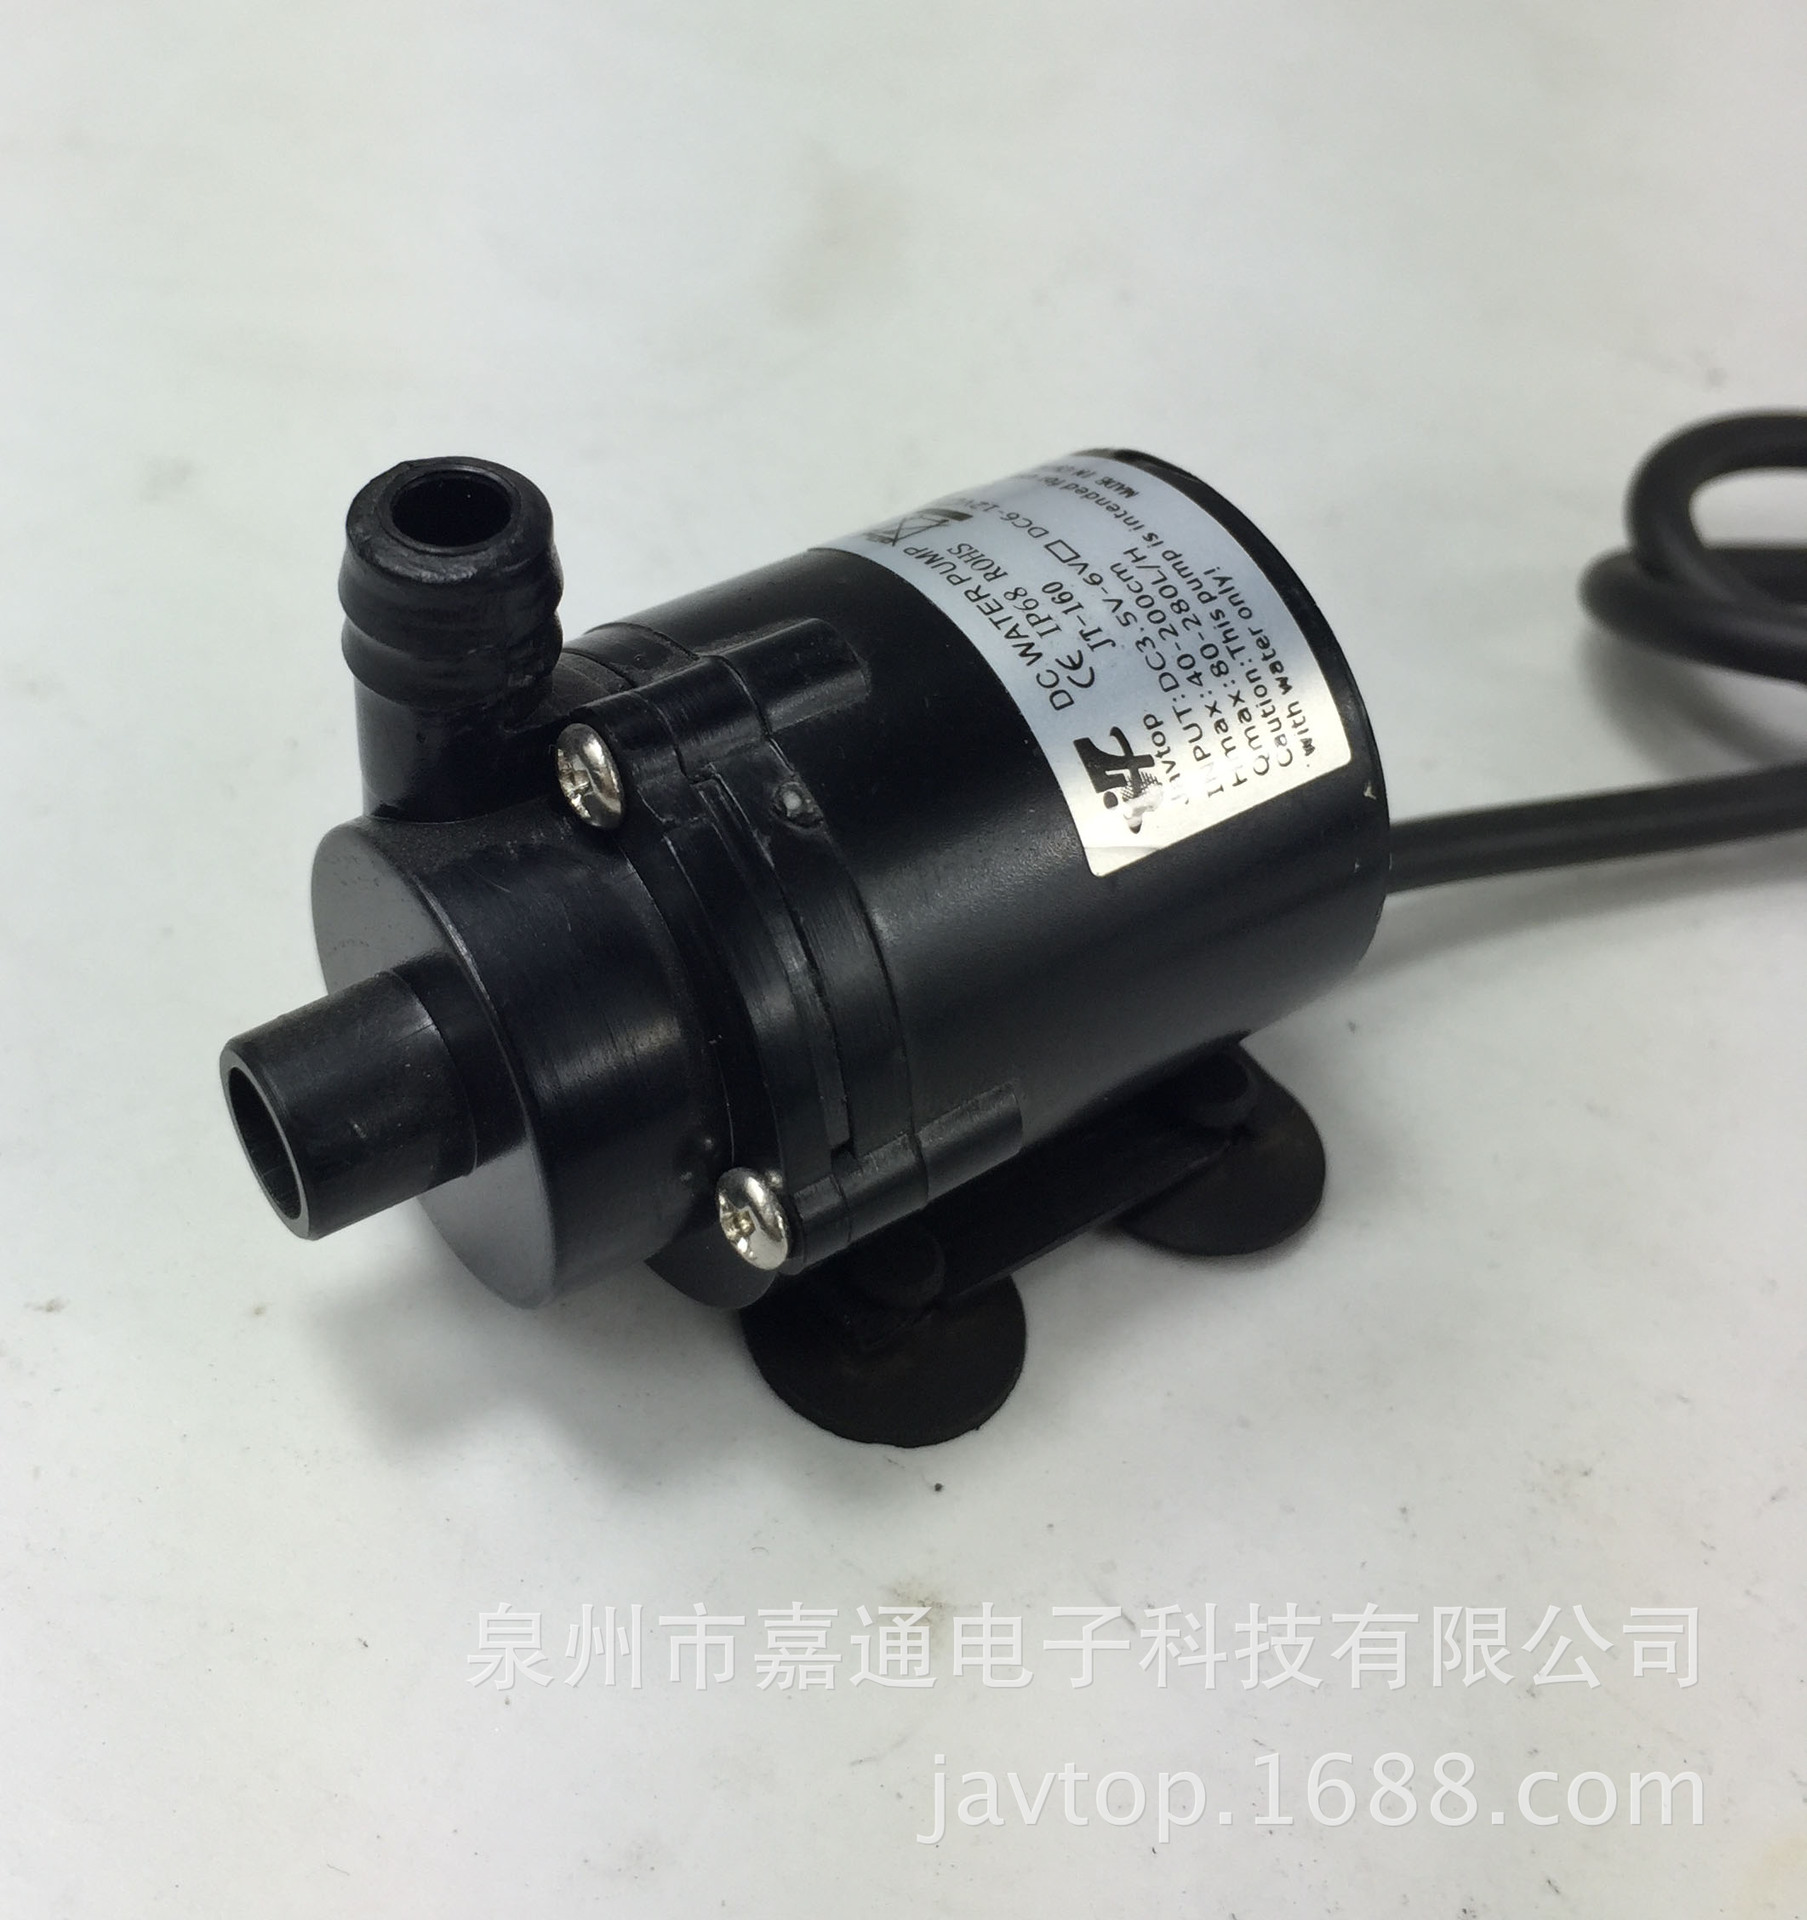 Mini Brushless DC Water Filter Pump Submarine pump JT-160 dc 12v 1a powerful micro brushless magnetic amphibious appliance water pump